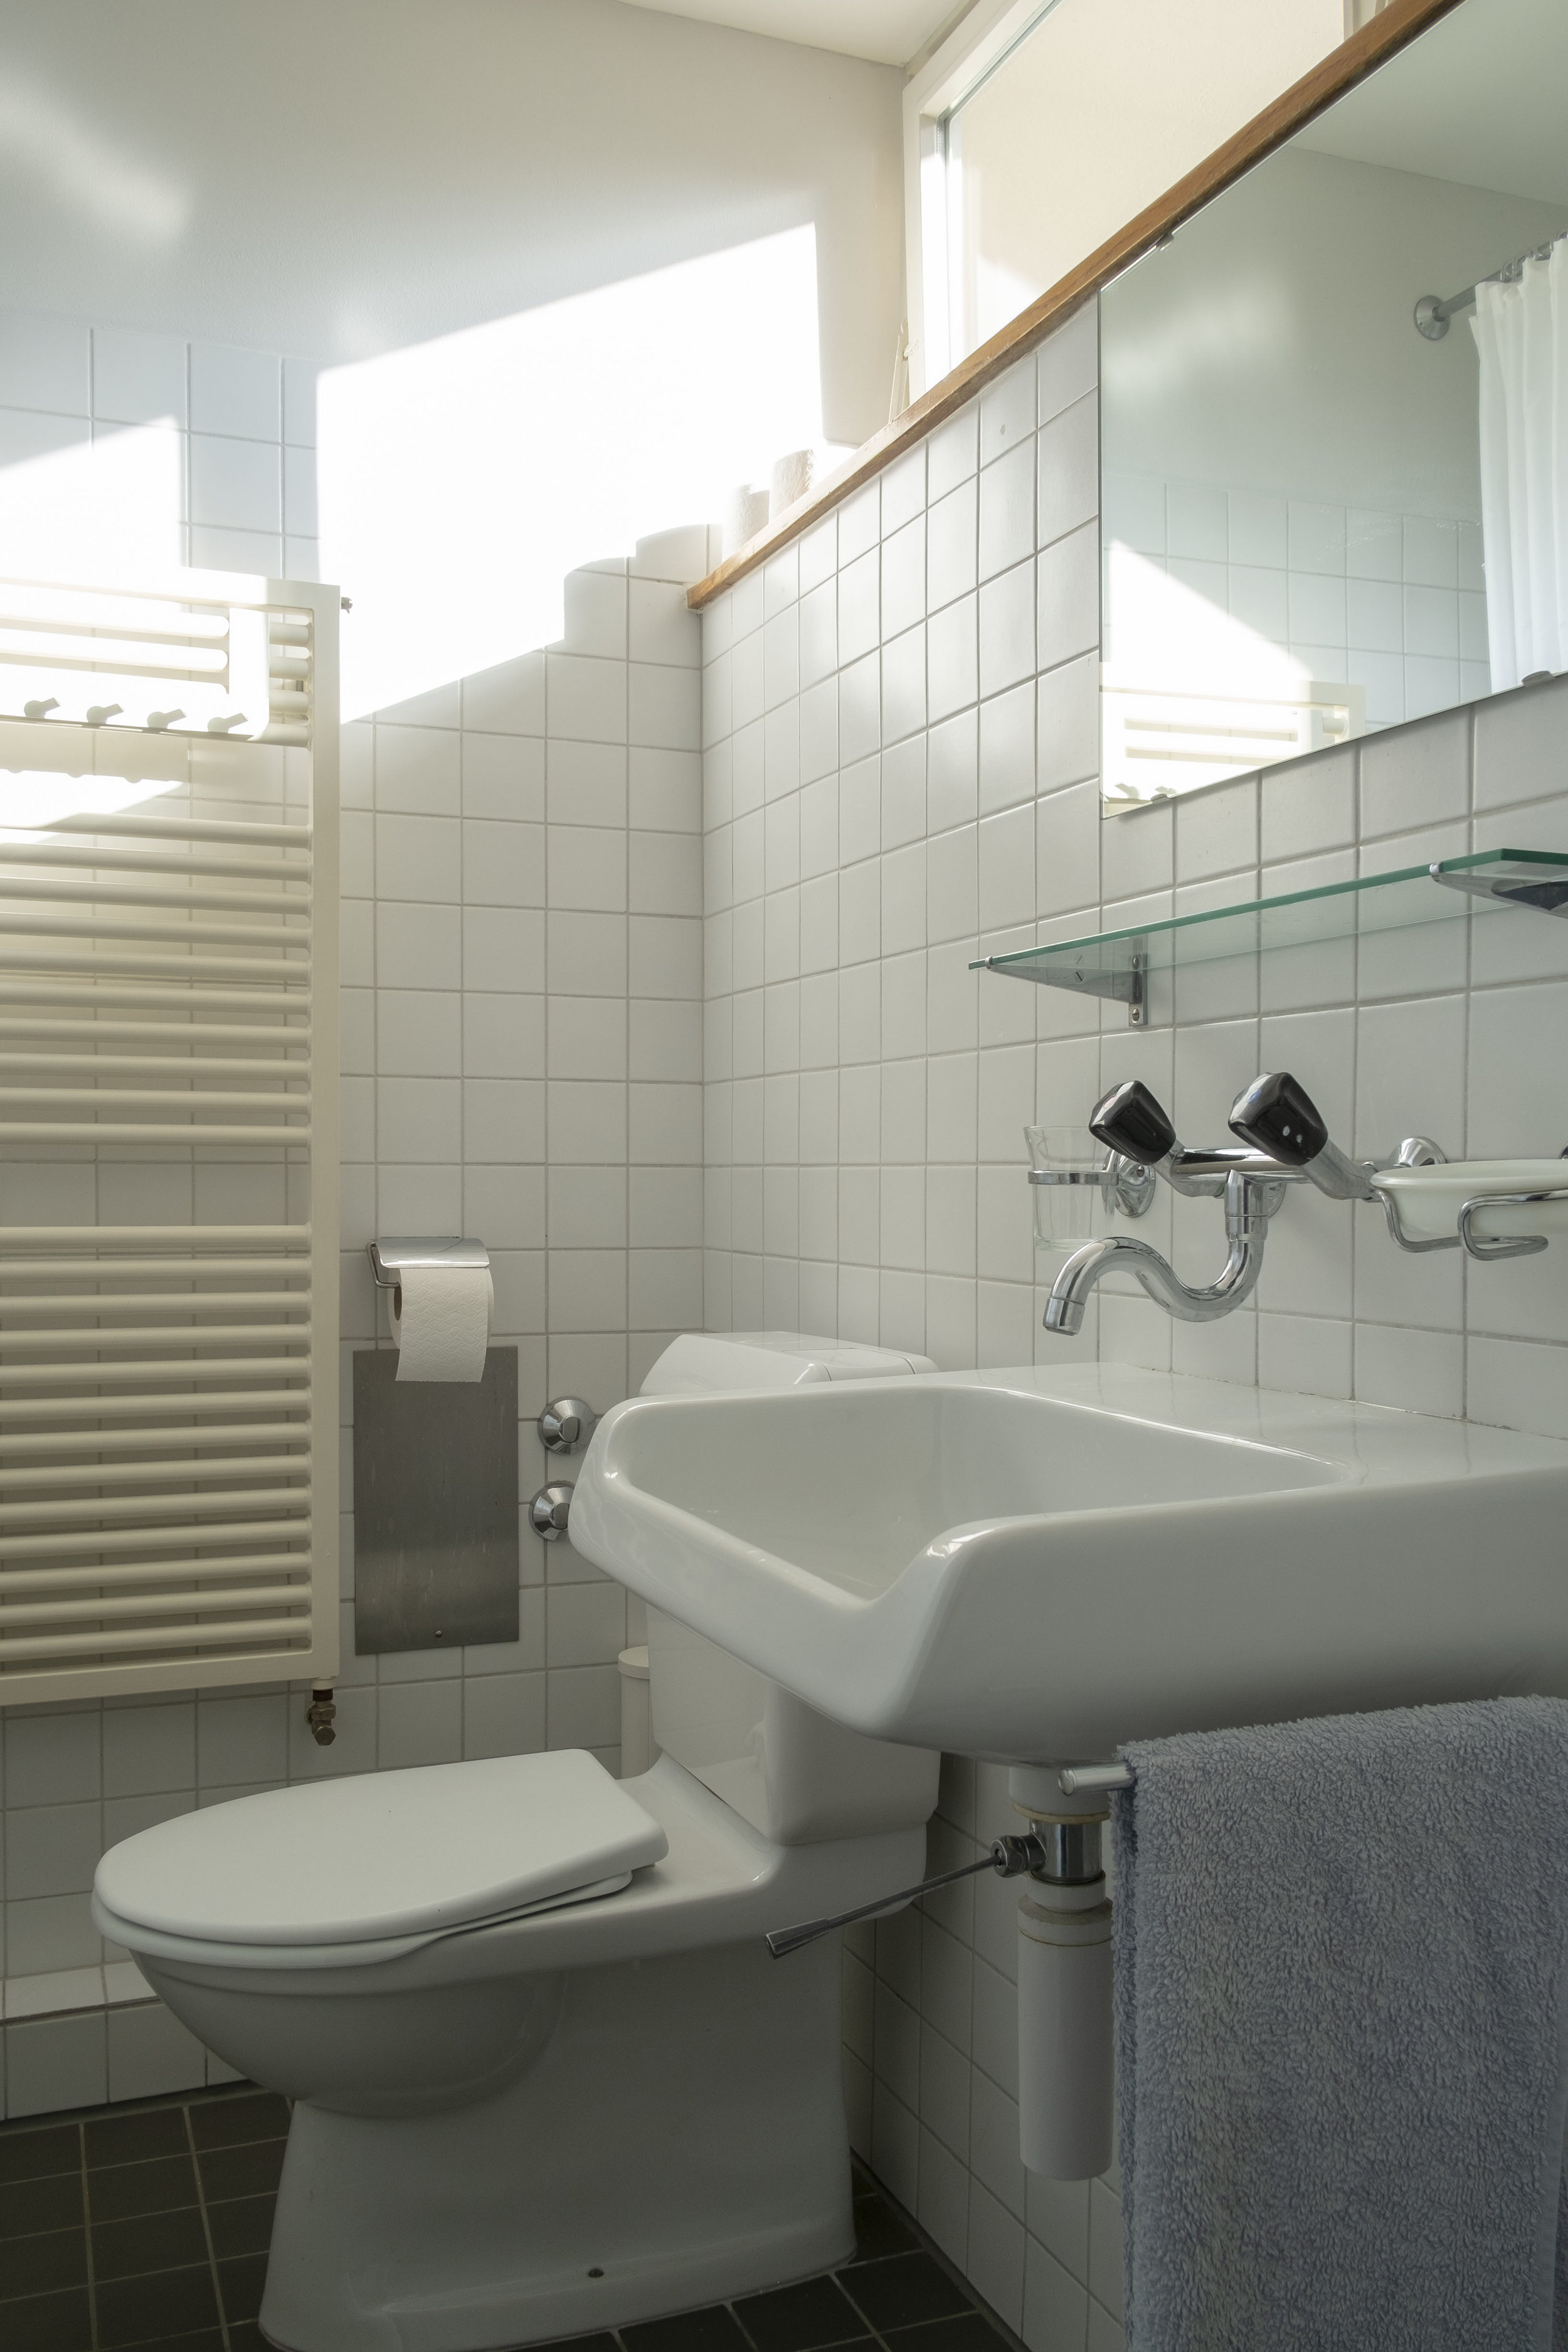 The bathroom renovated in the 1980s